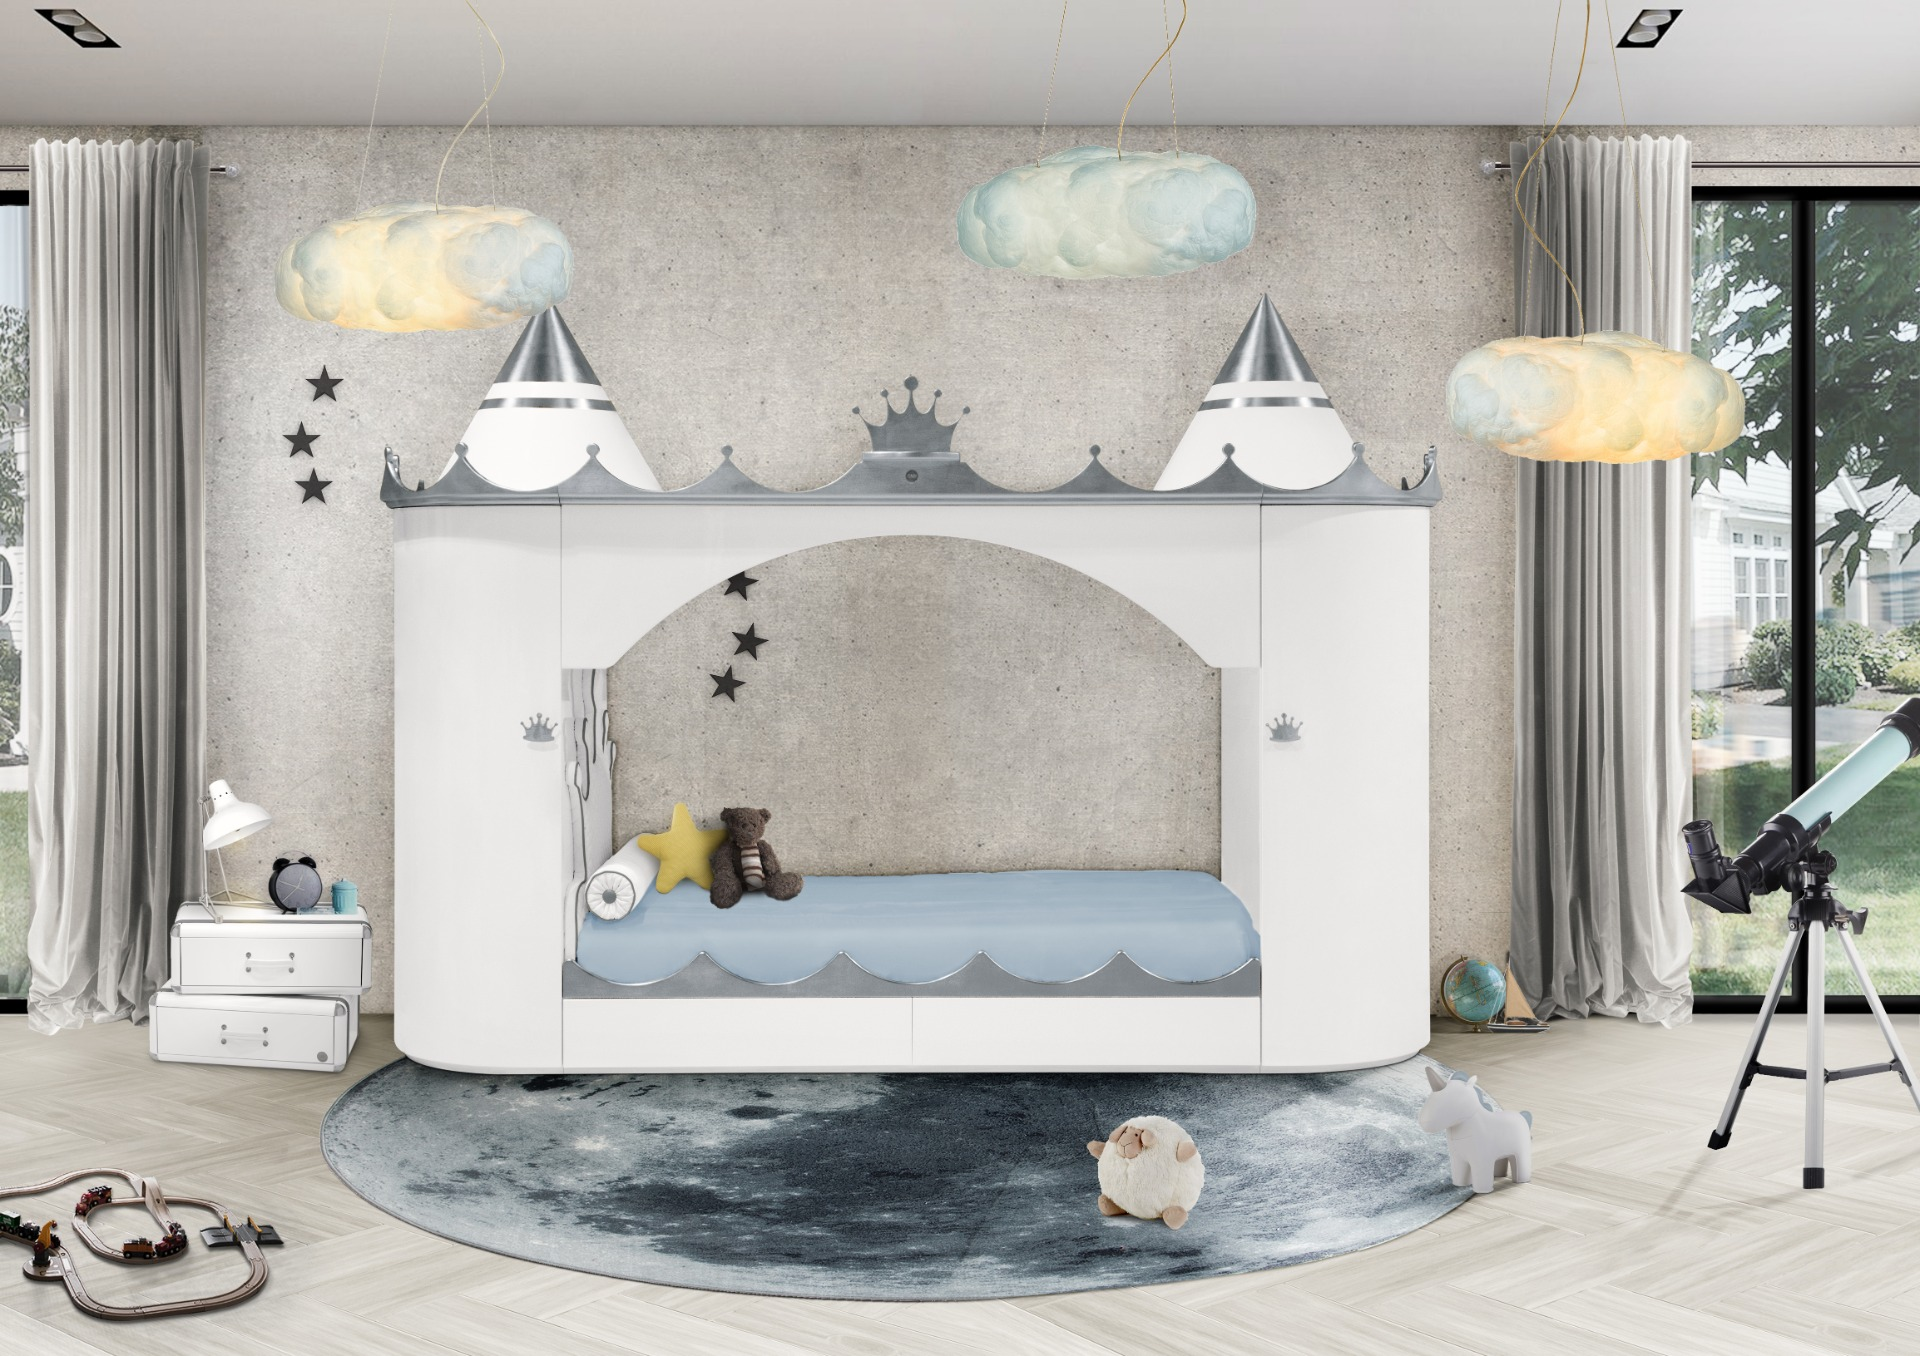 5 Rugs For Your Kid's Bedroom